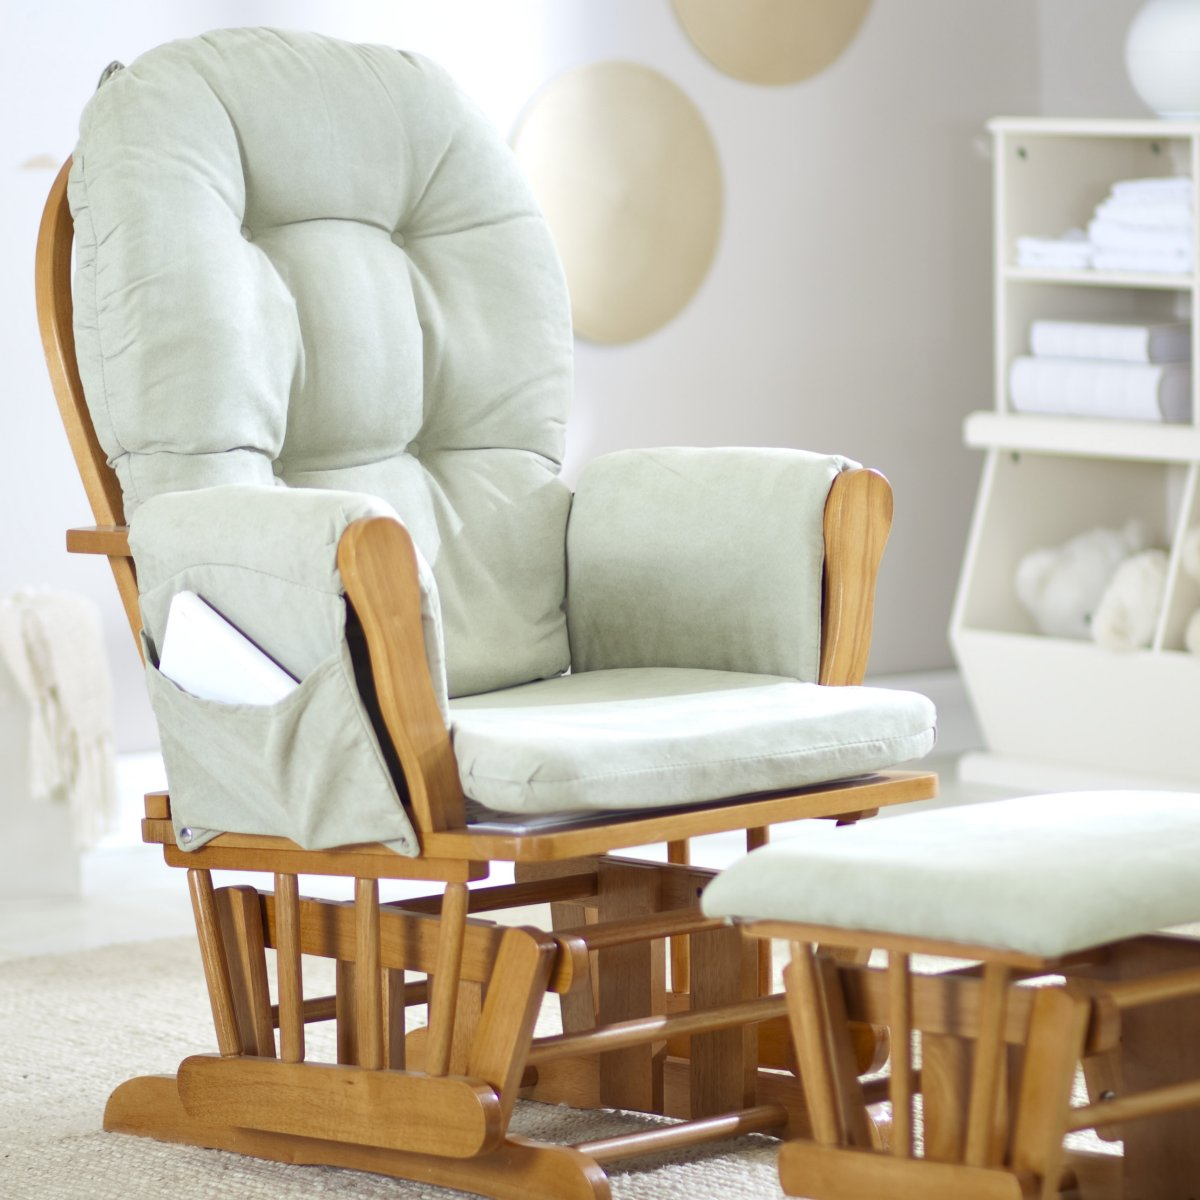 Image of: amazing glider rocking chair